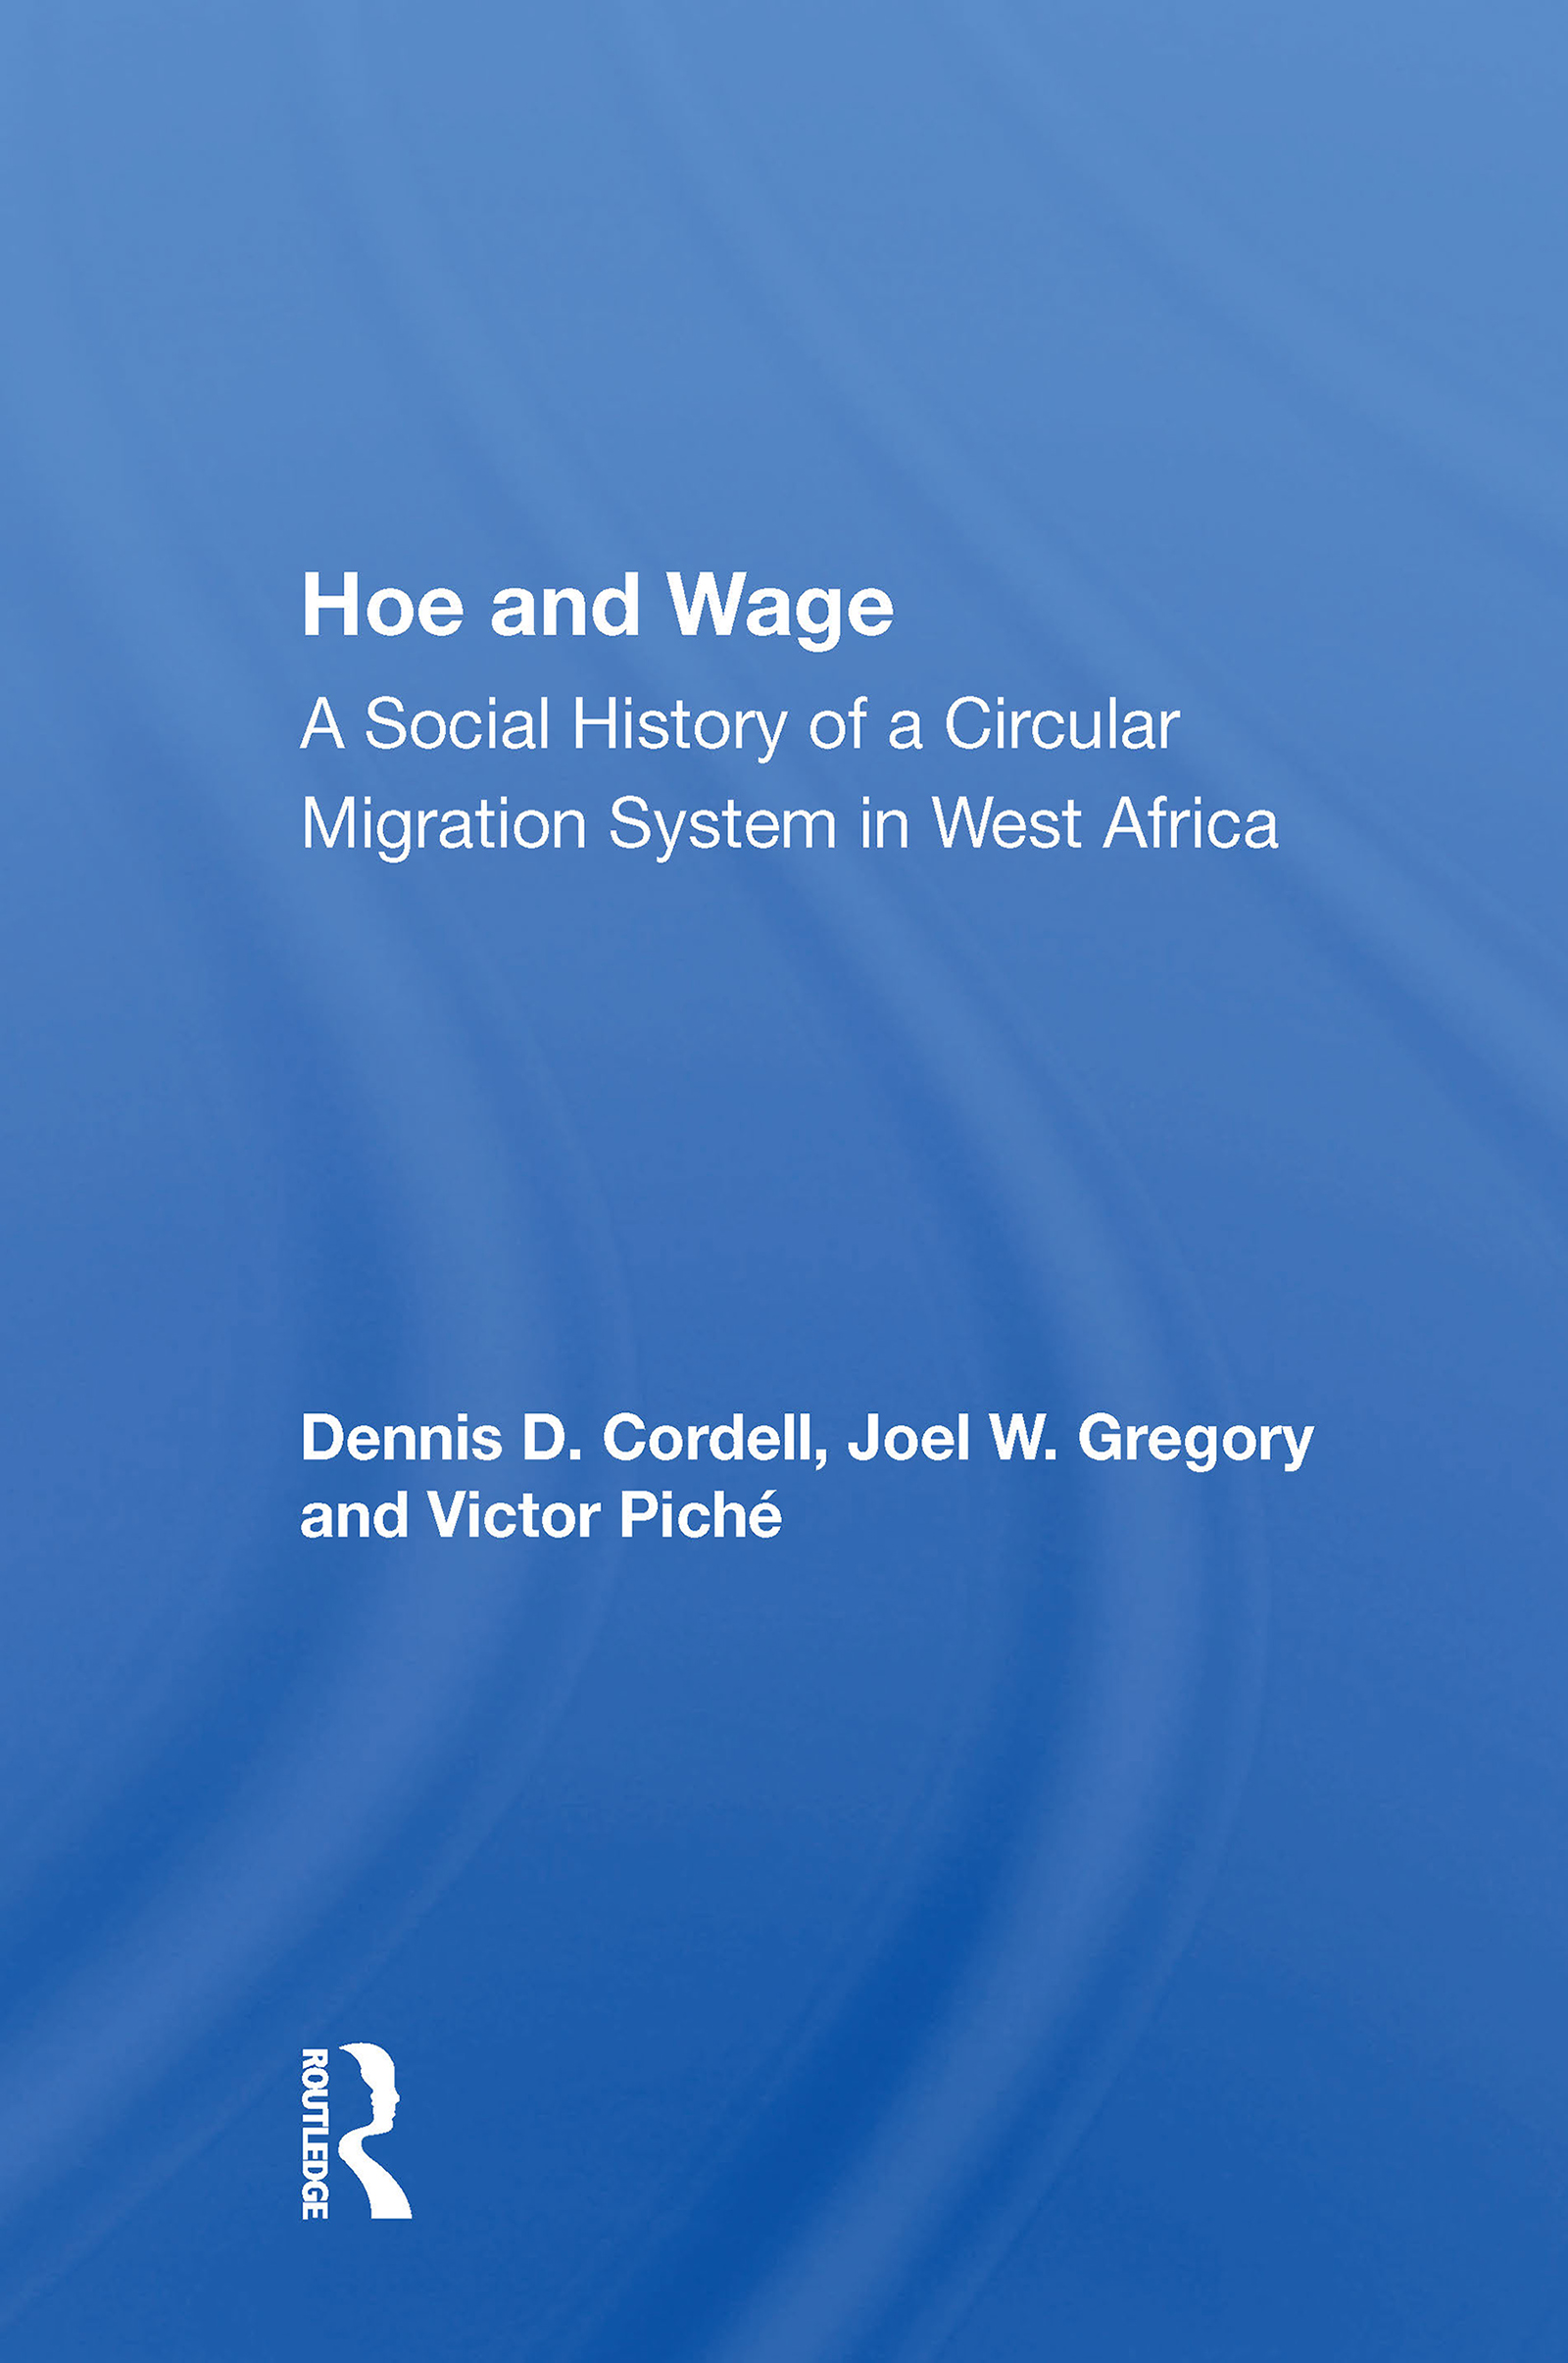 Hoe And Wage: A Social History Of A Circular Migration System In West Africa book cover